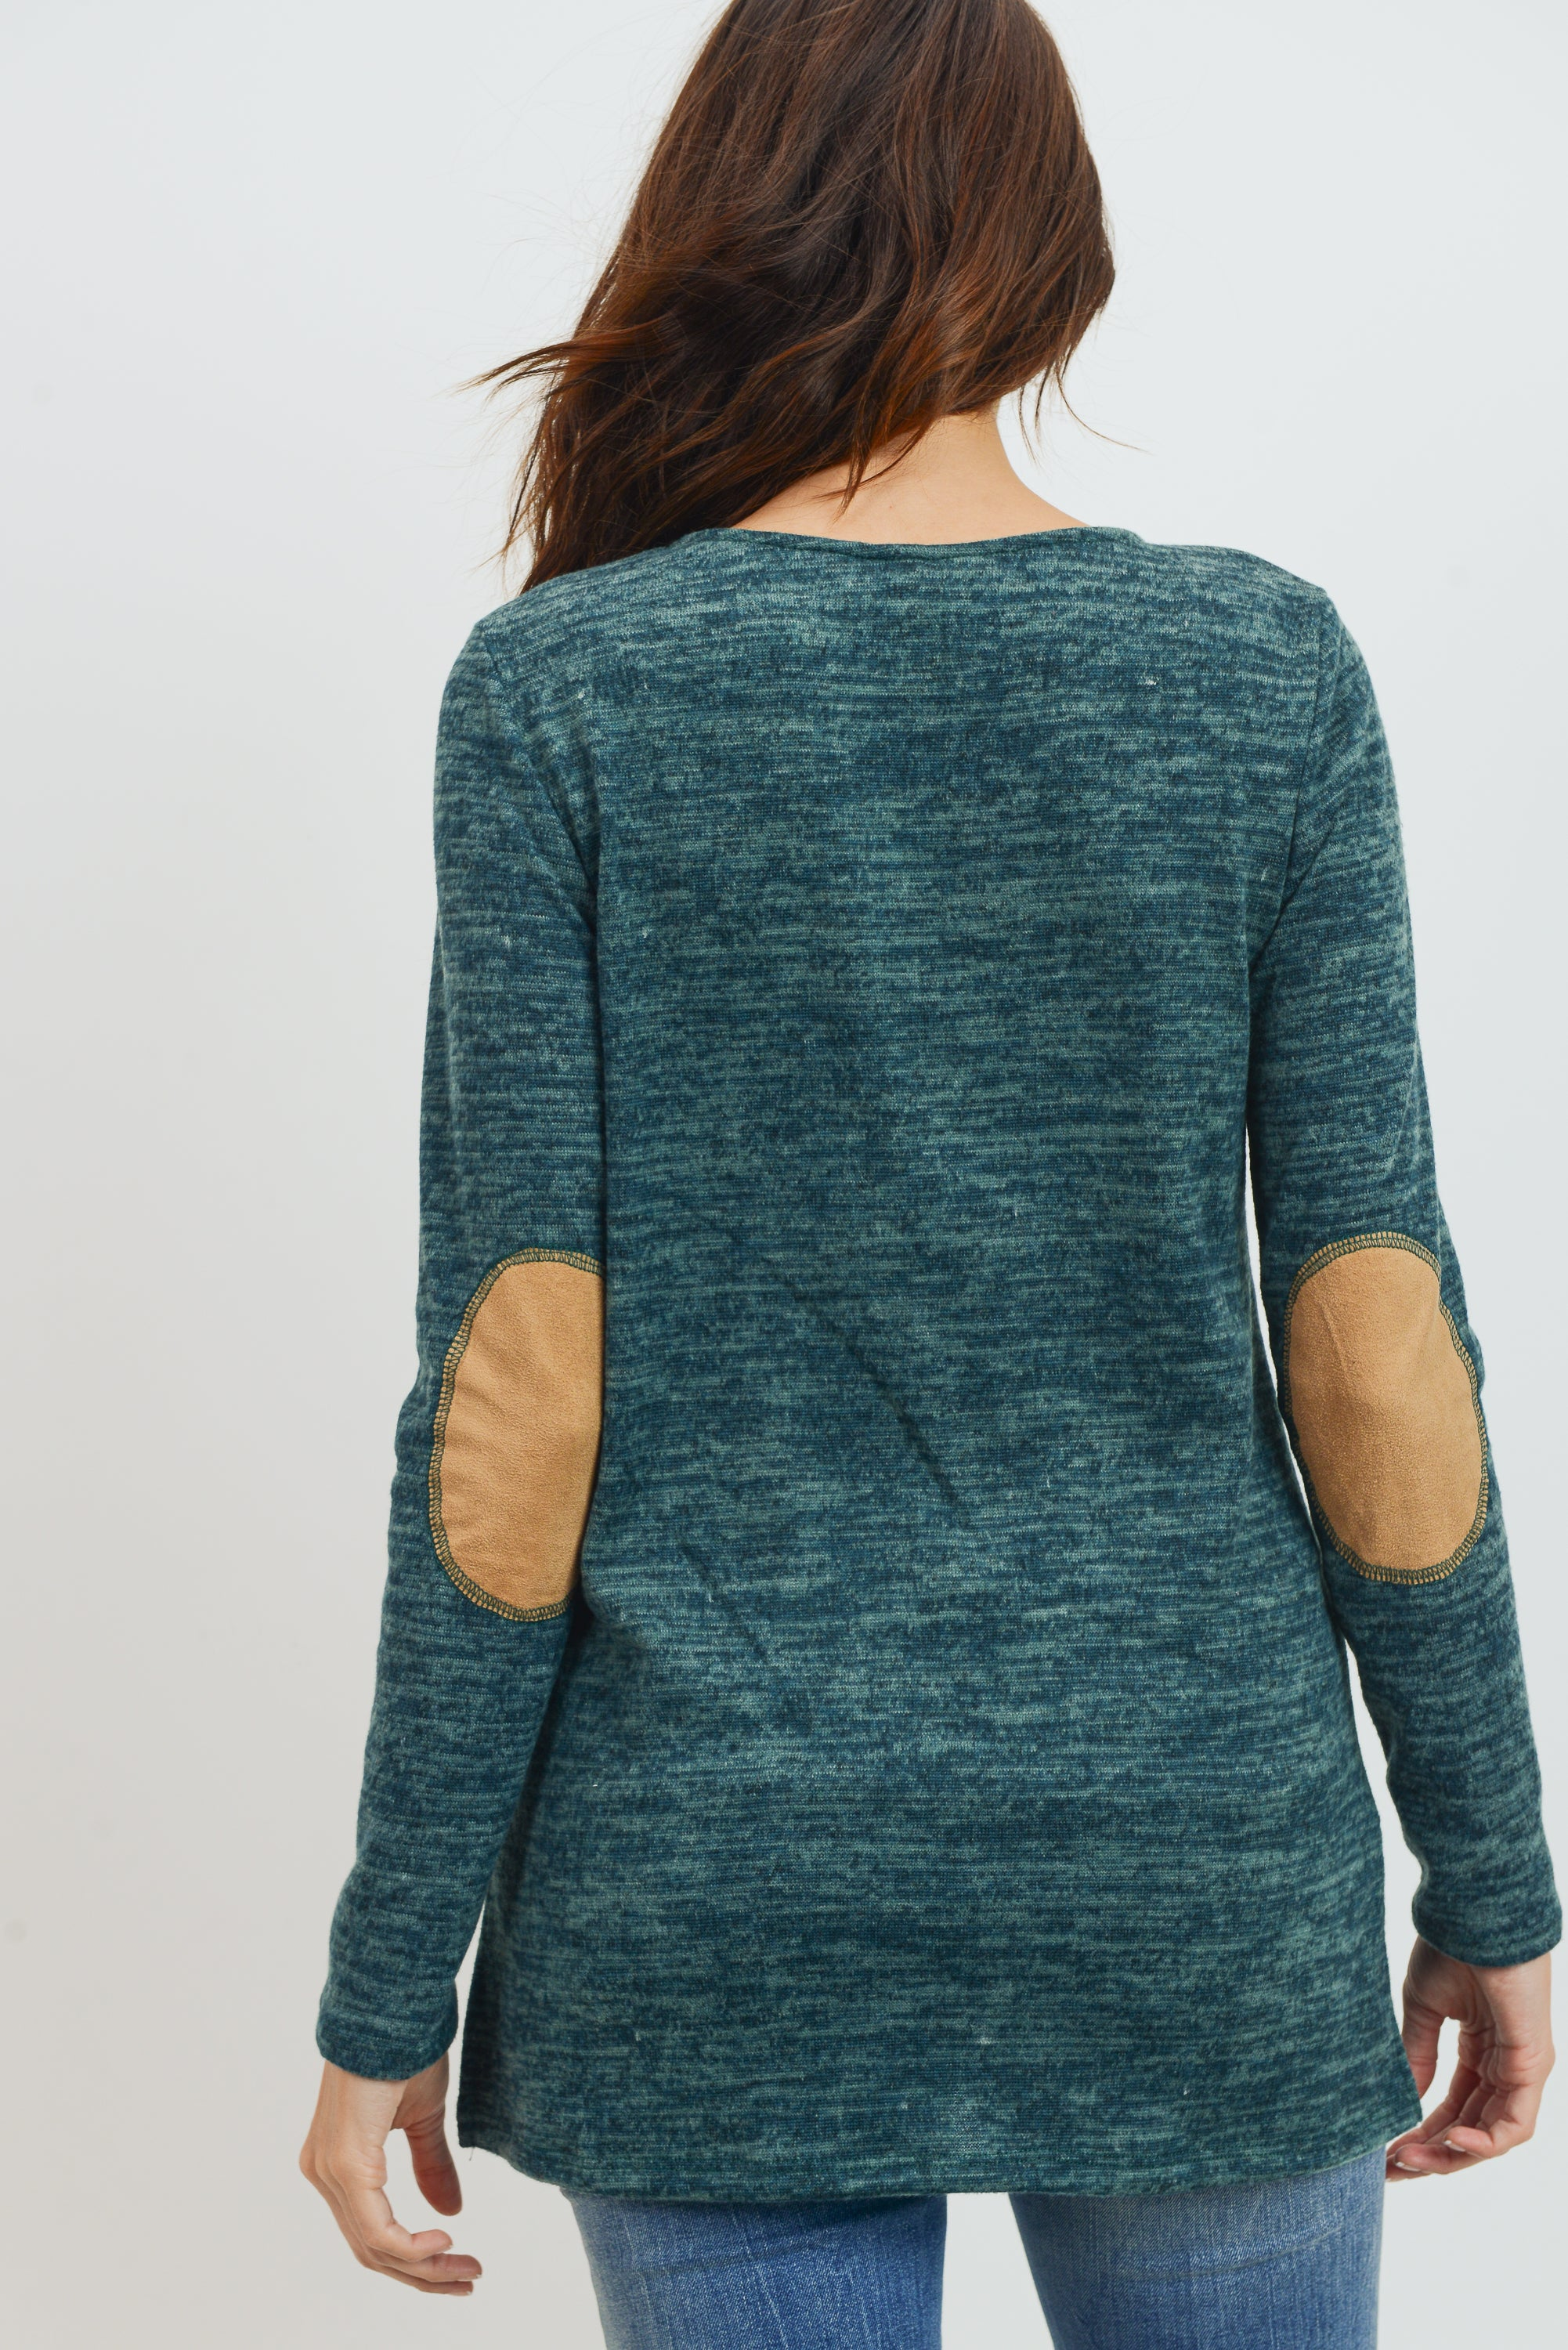 Elbow Patch Tunic Long Sleeve Maternity Top